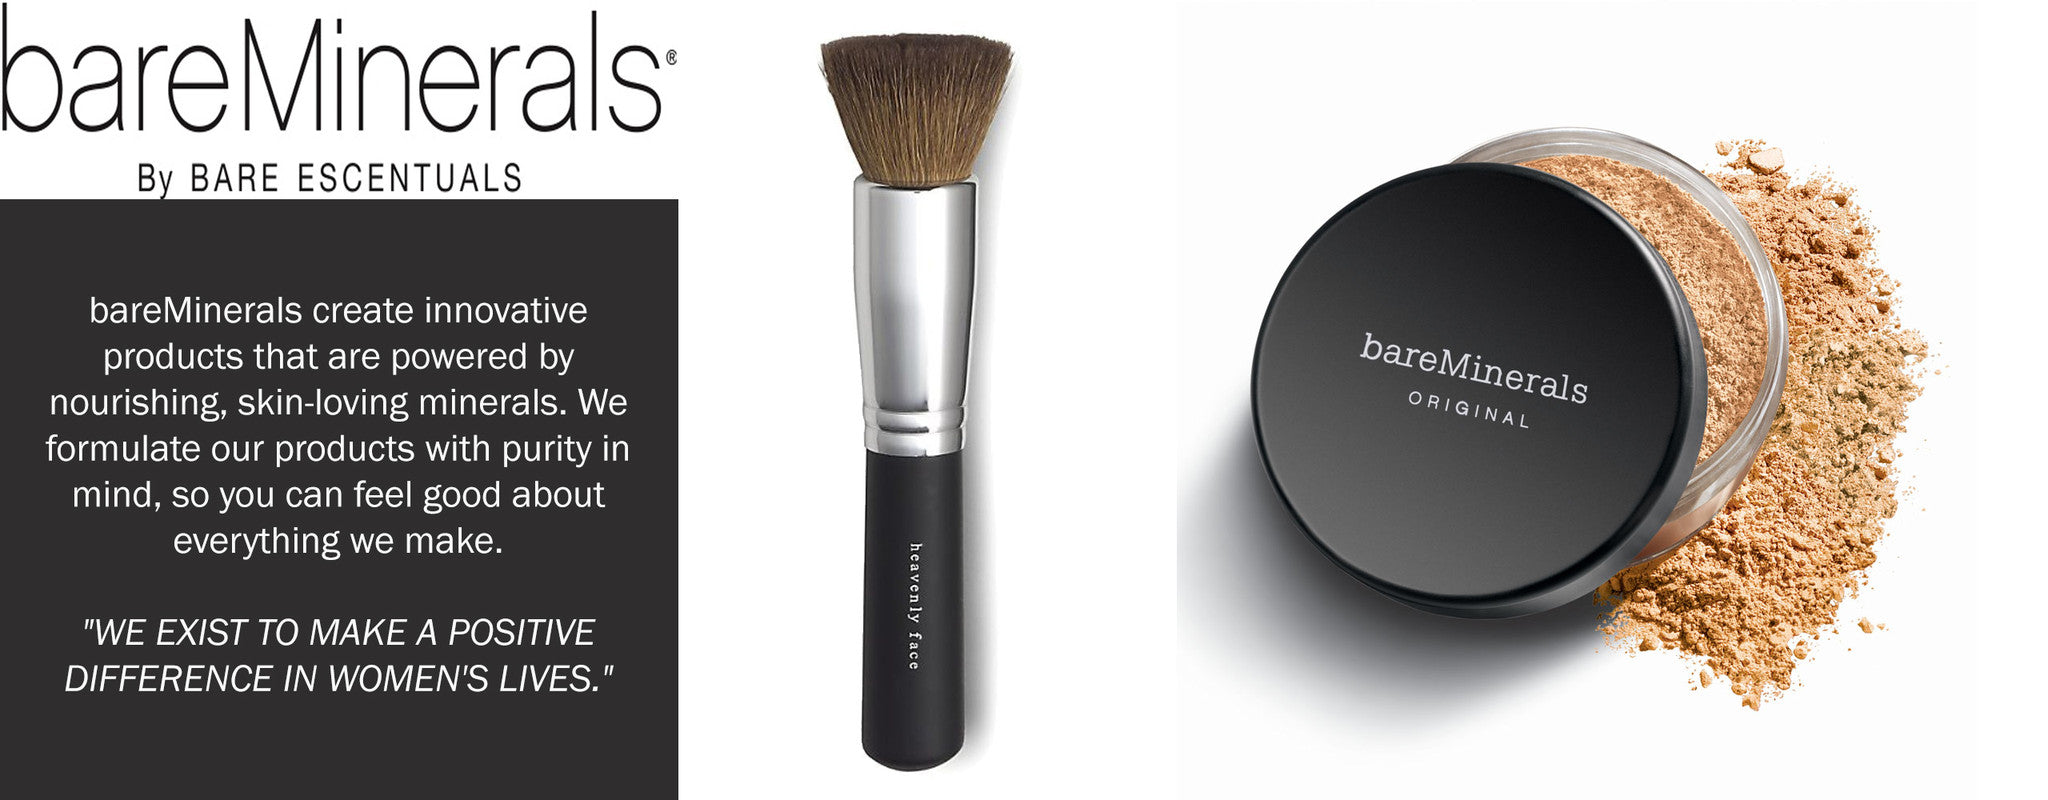 bareMinerals Collection Image